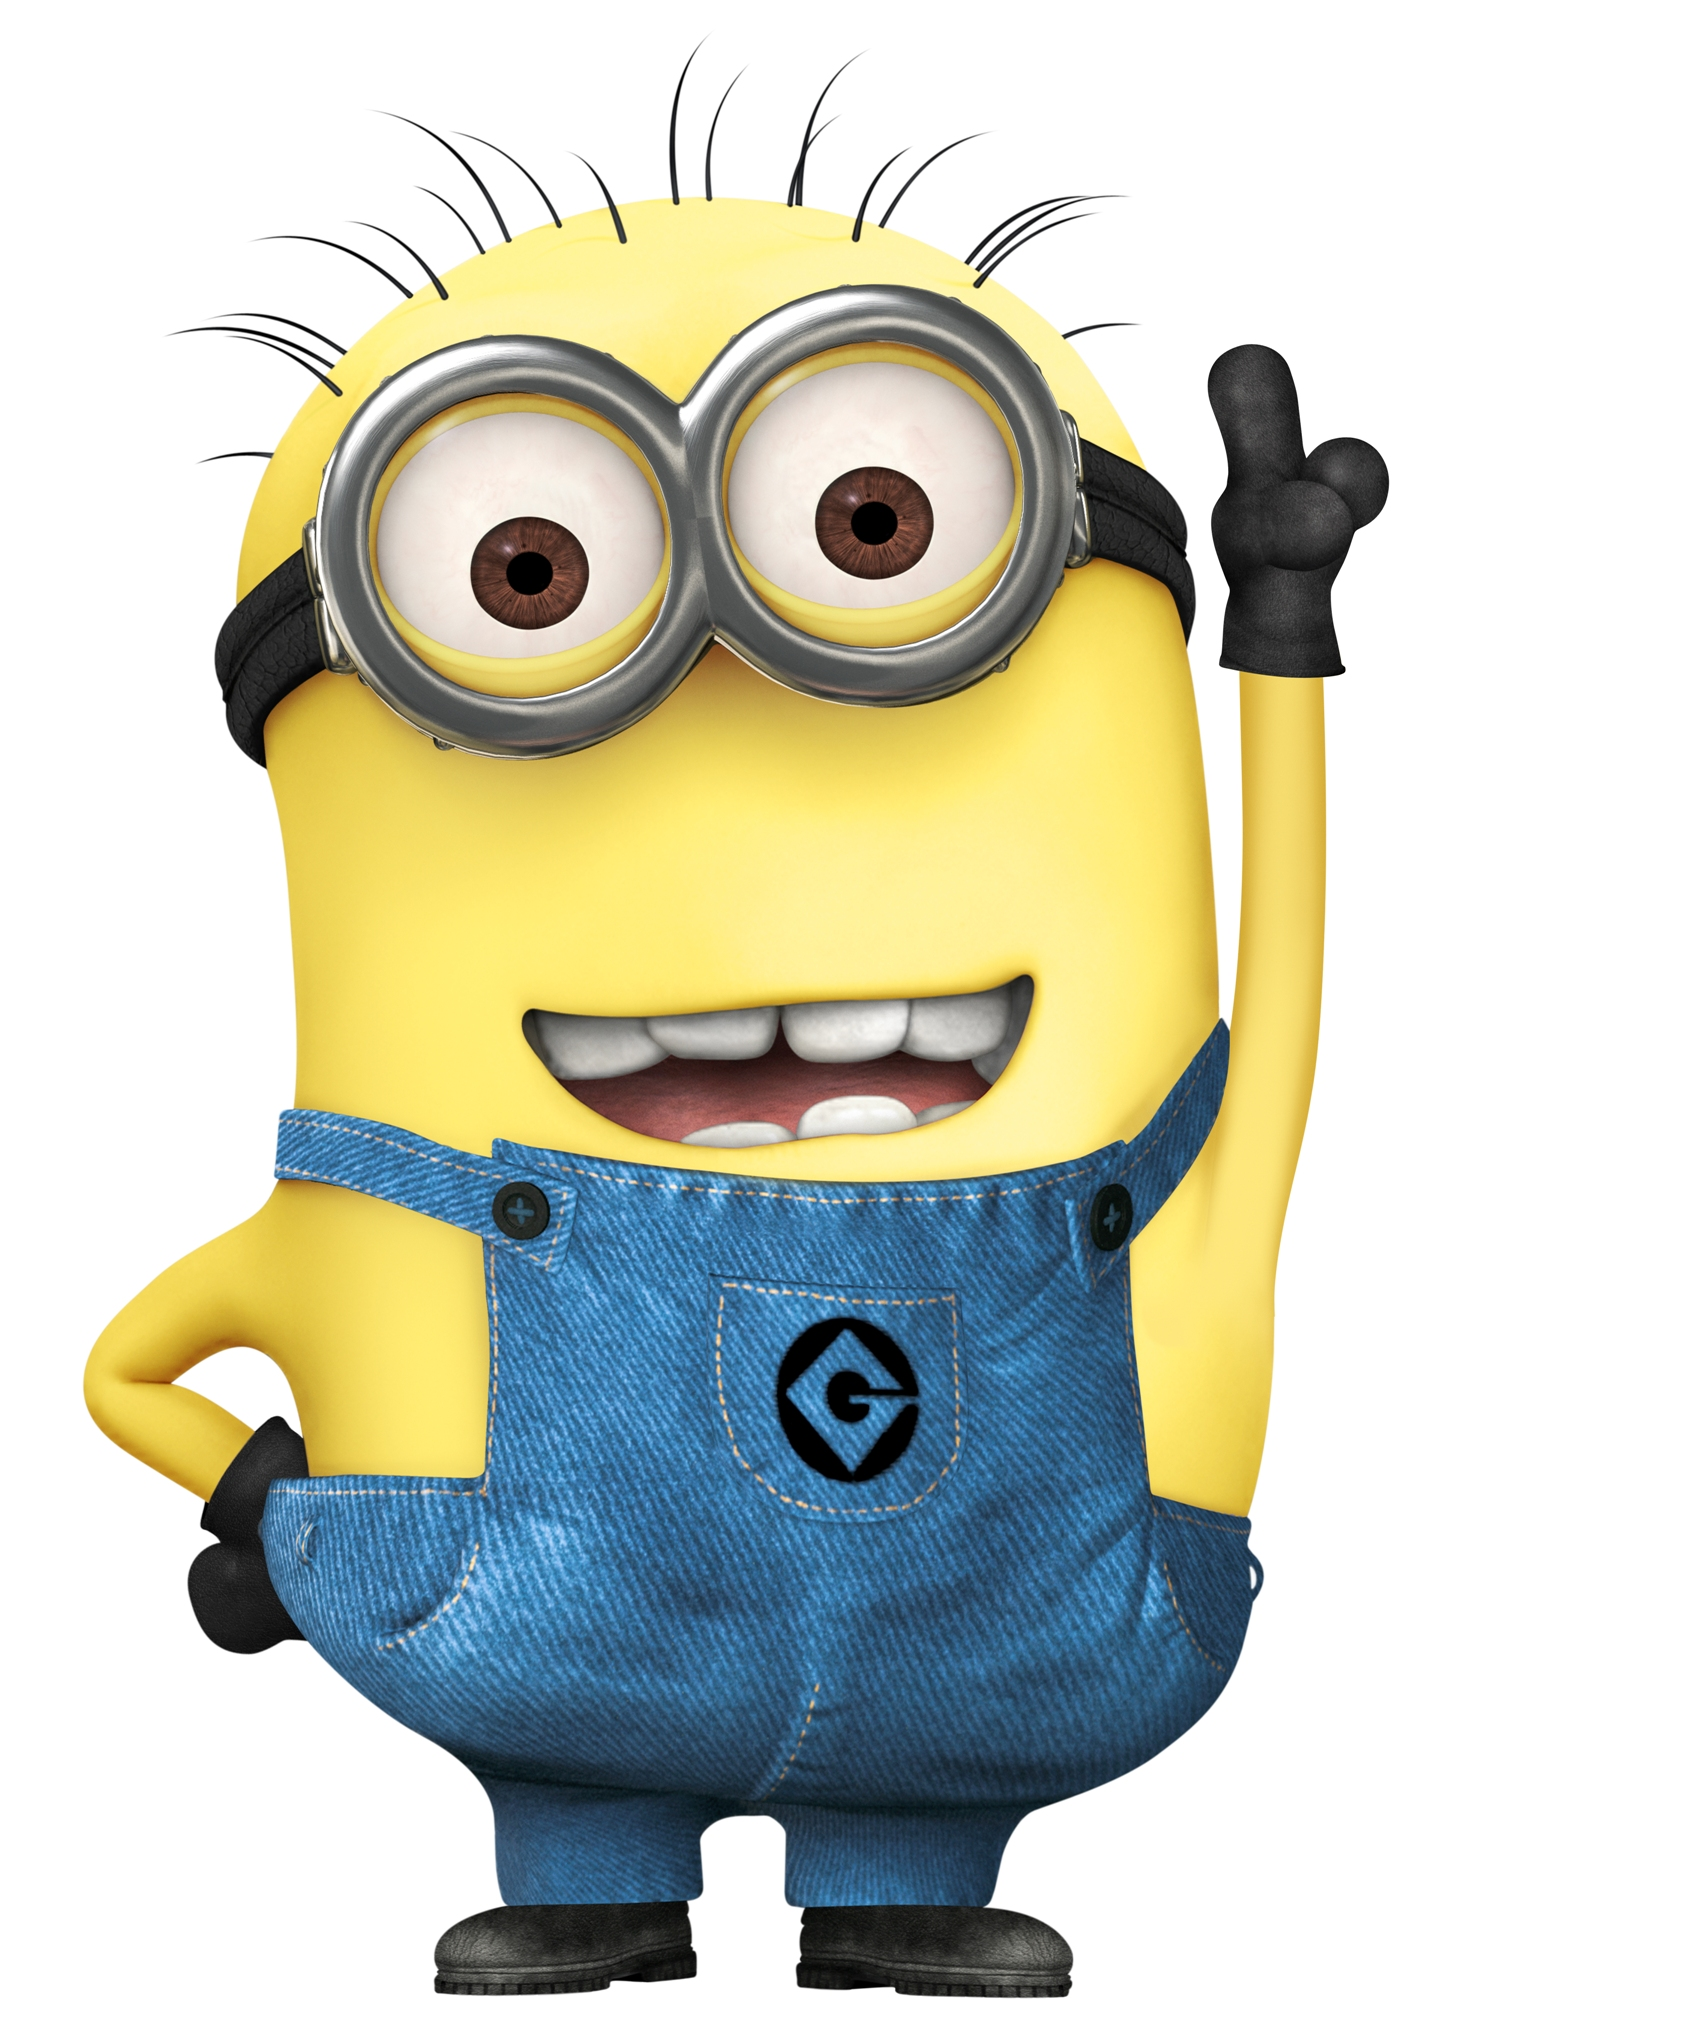 despicable me characters mr 4 Despicable Me 2 Minions Pictures, Movie ...